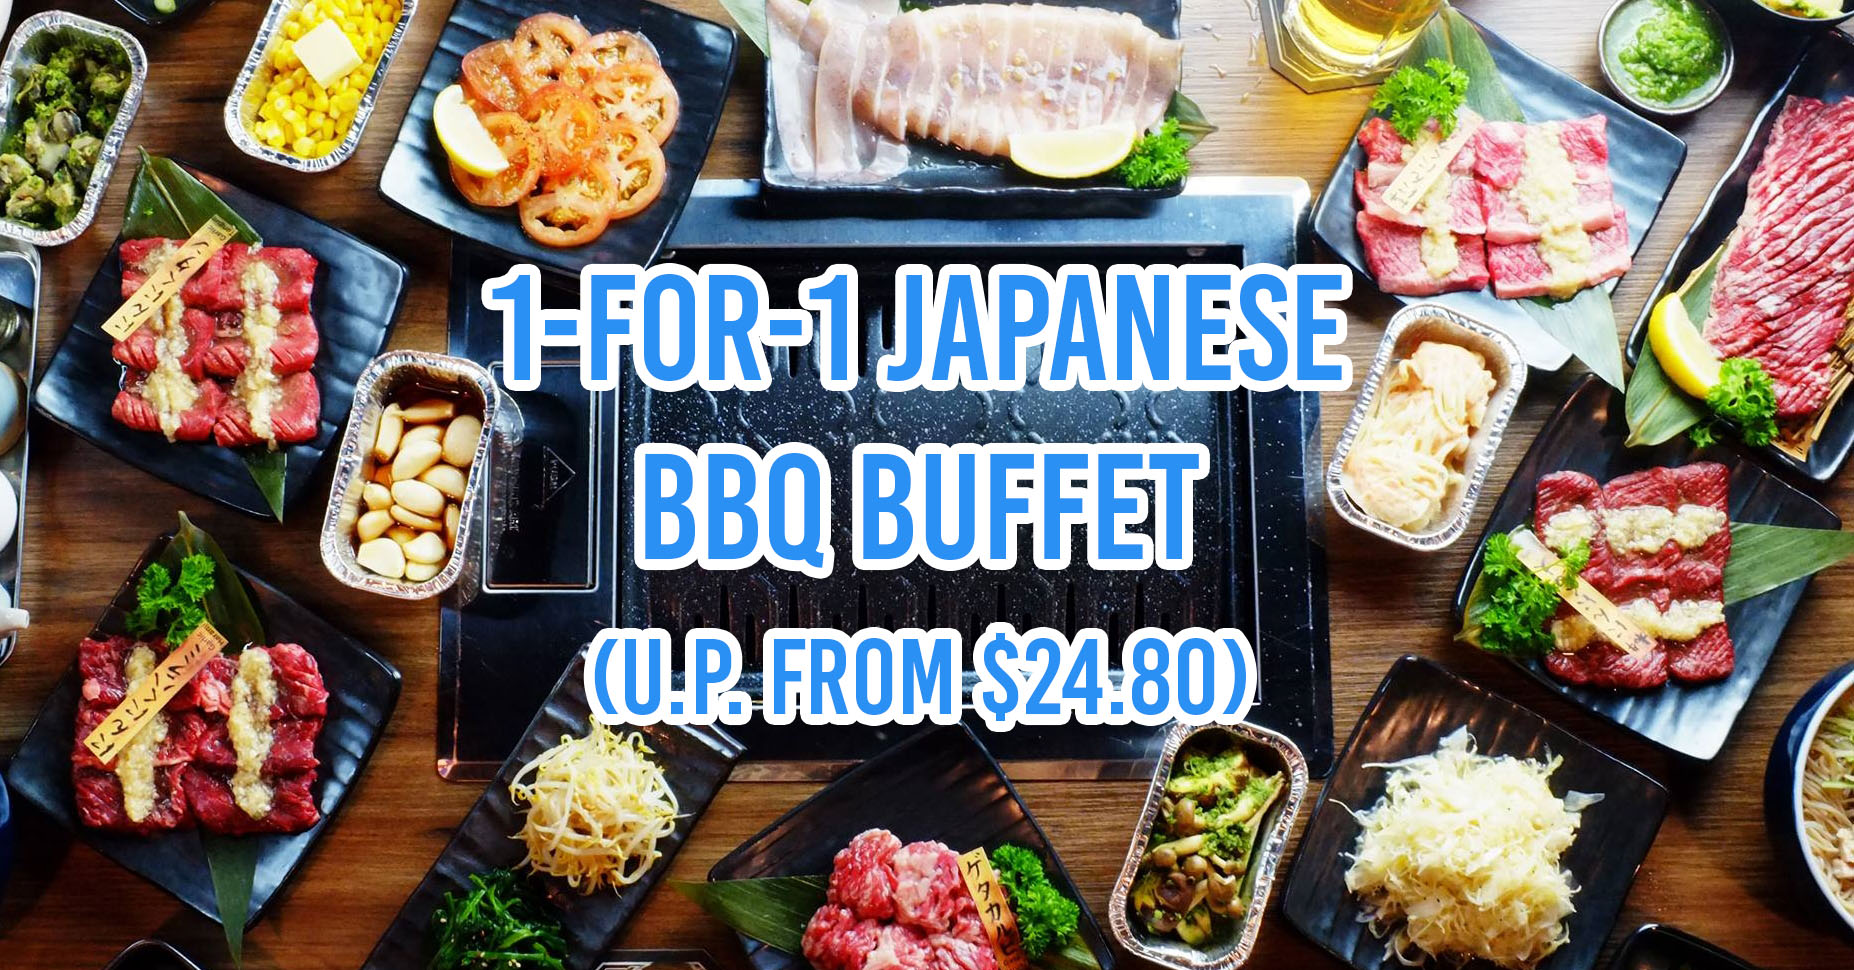 1 for 1 BBQ buffet - April 2019 lobangs